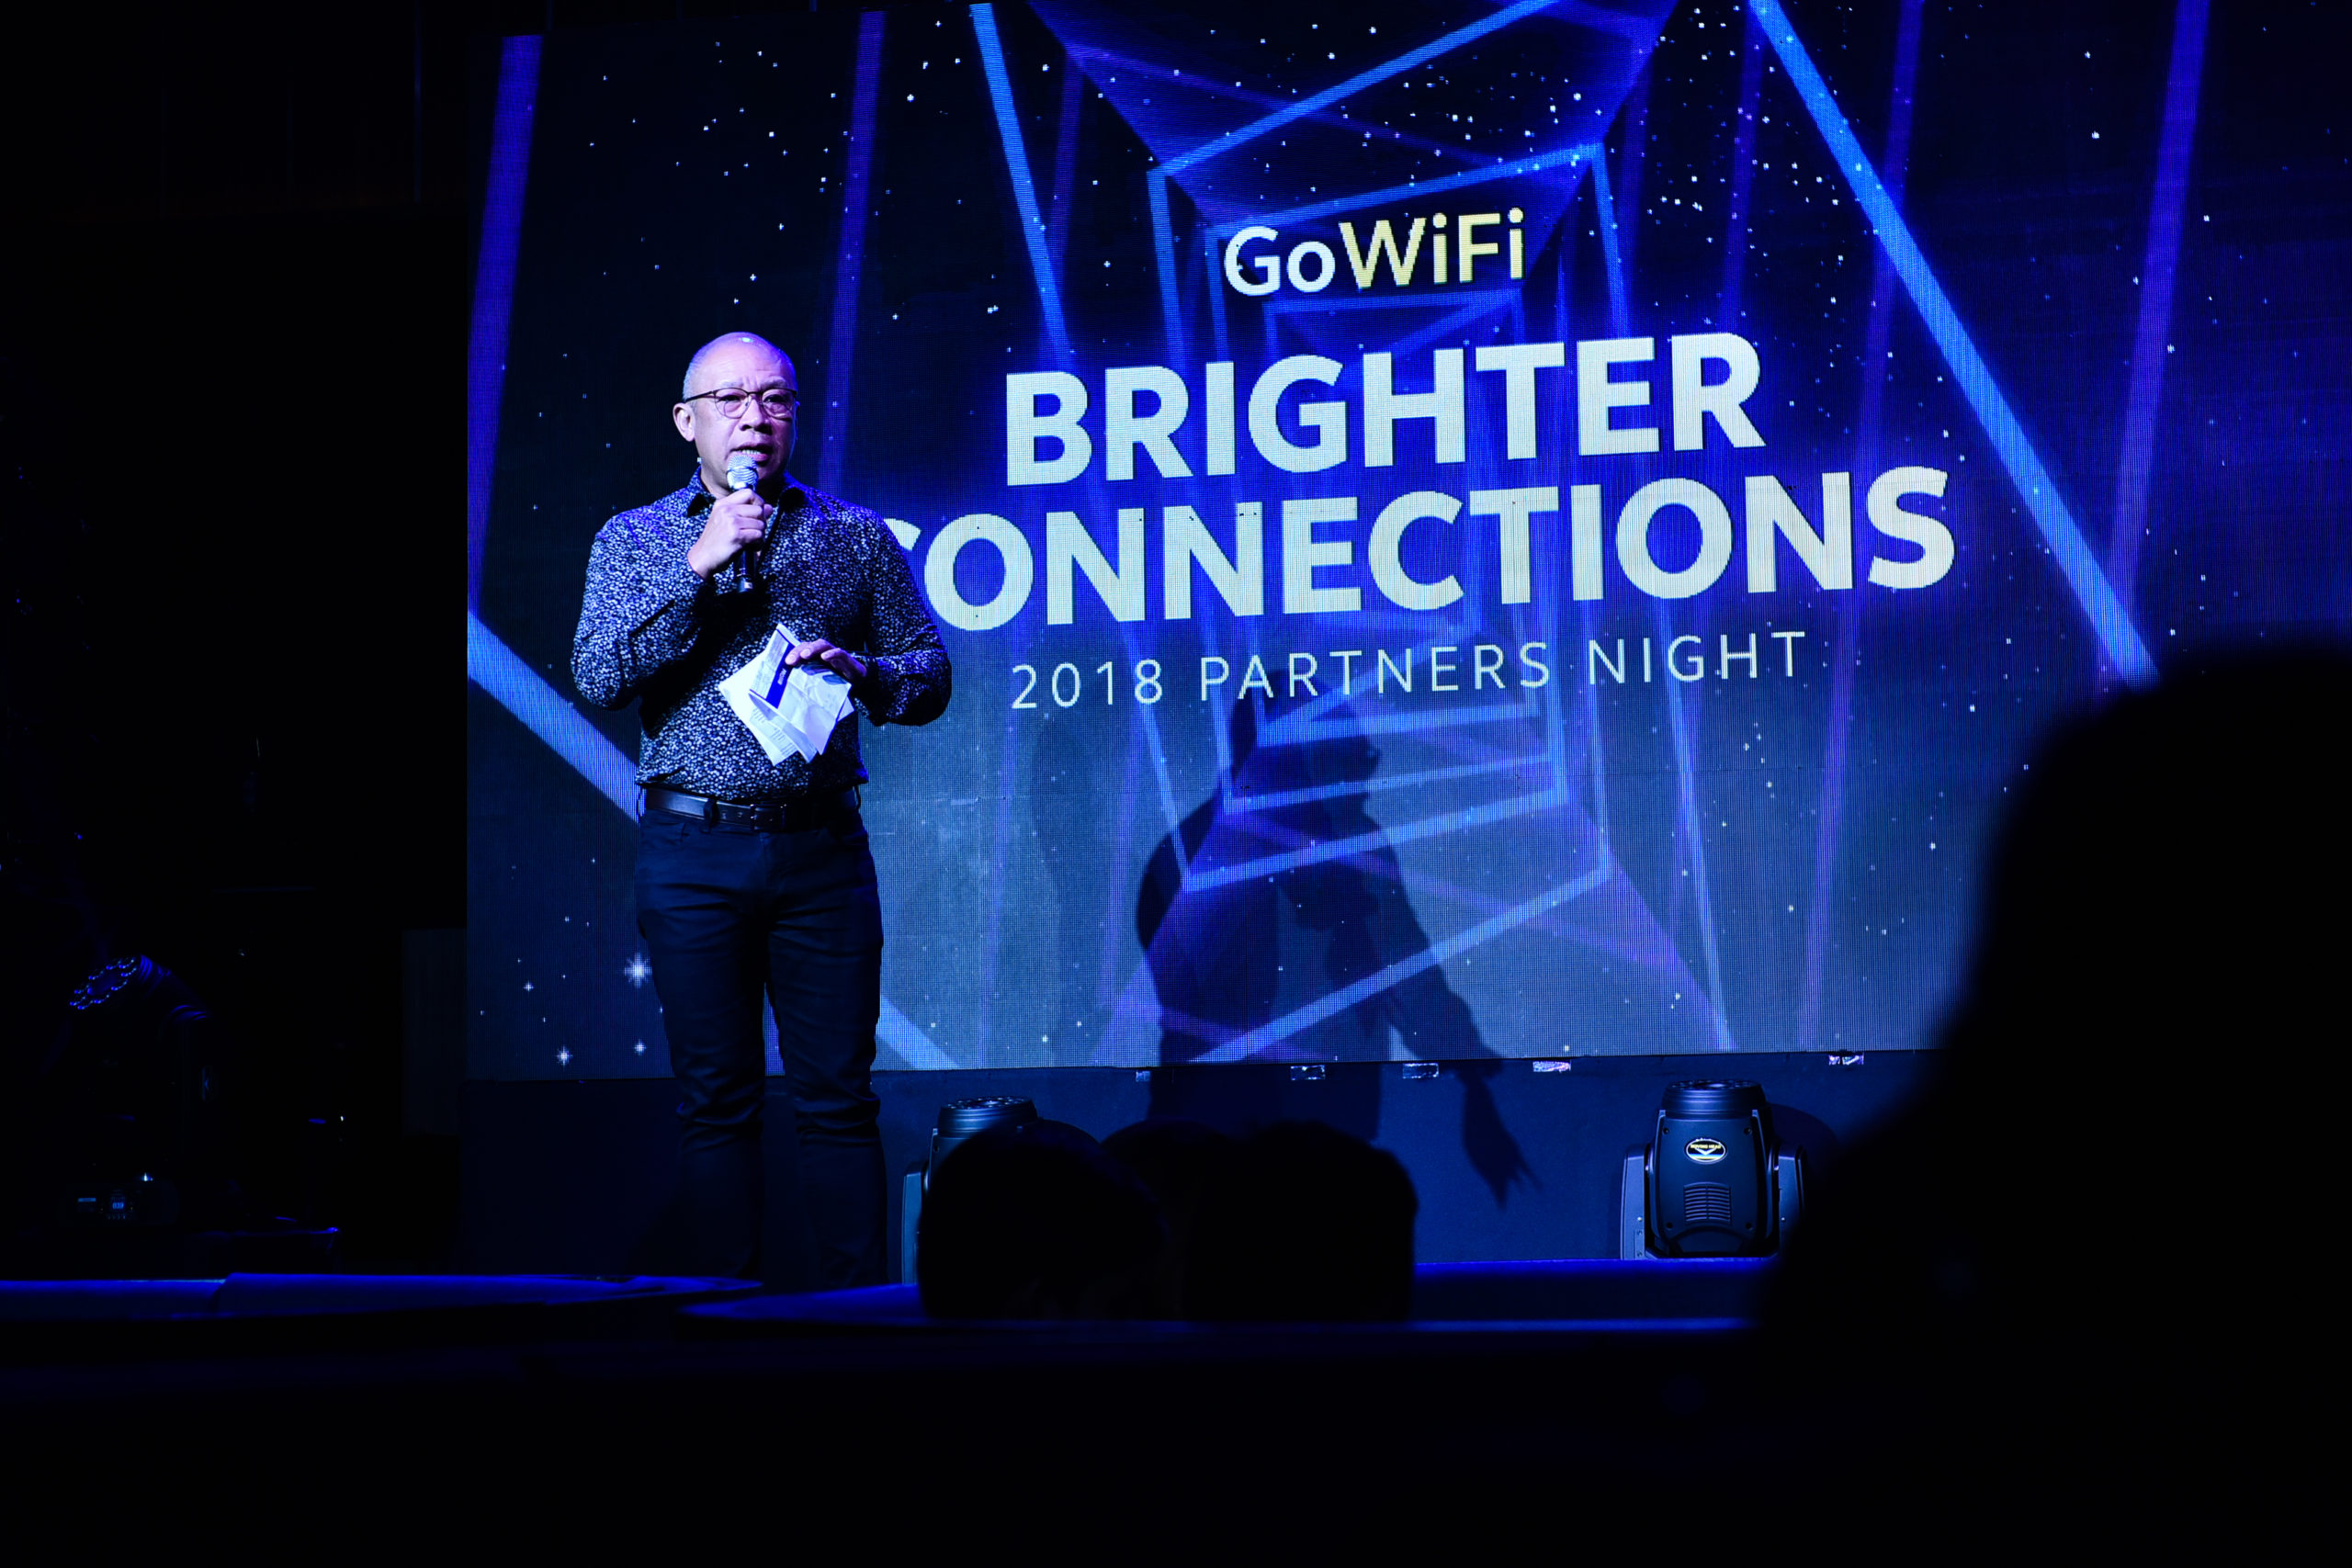 Globe Partners' Night celebrates growing business for GoWiFi services